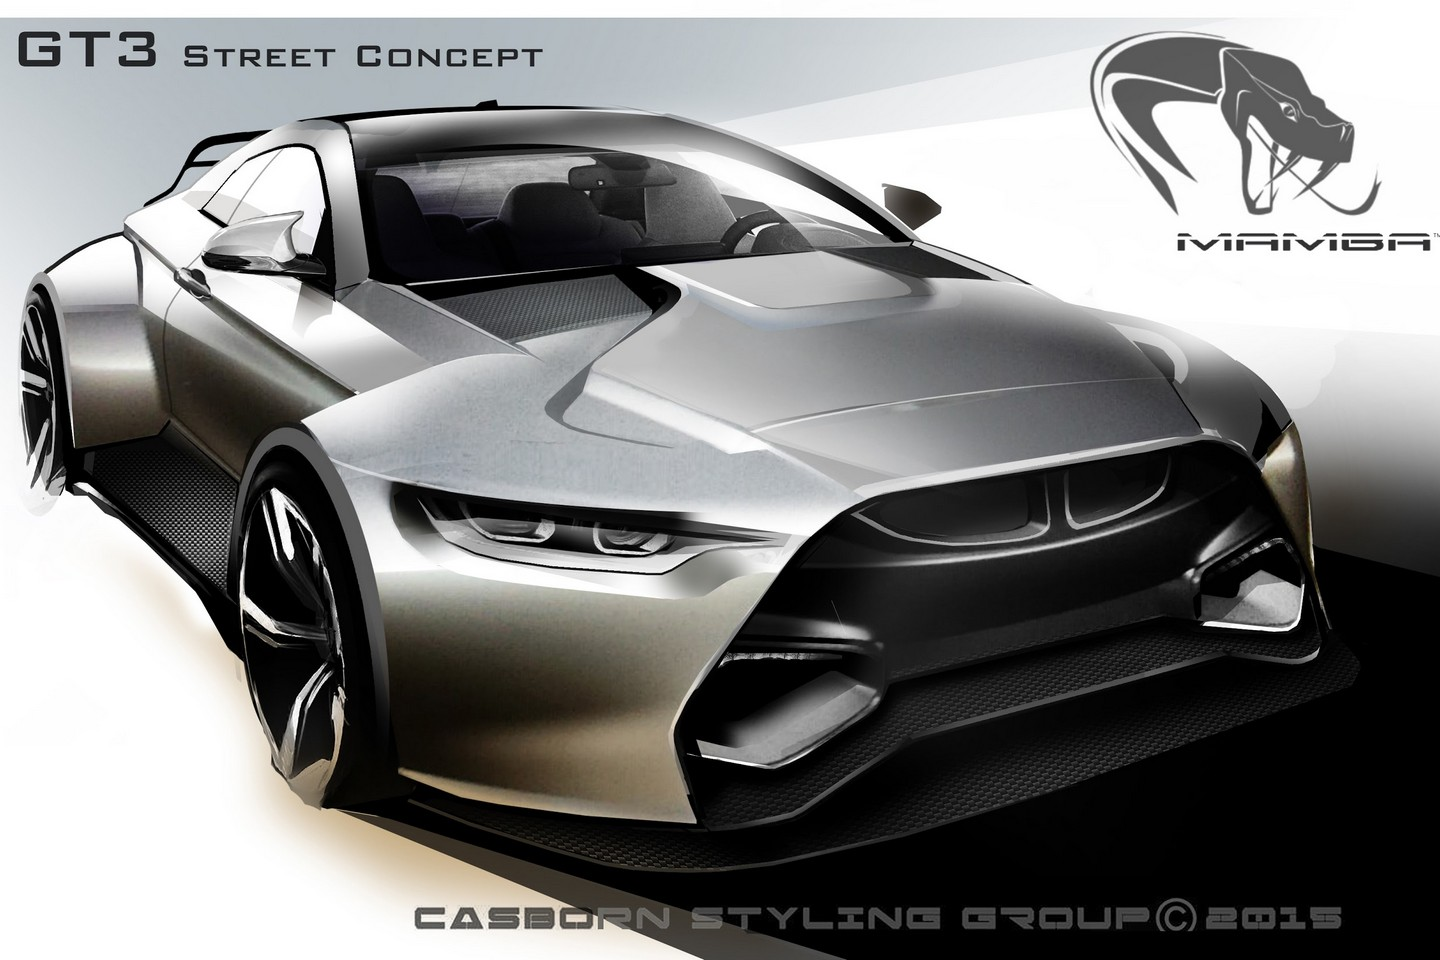 Bmw M4 Mamba Gt3 Street Concept With 719 Hp Image 423400